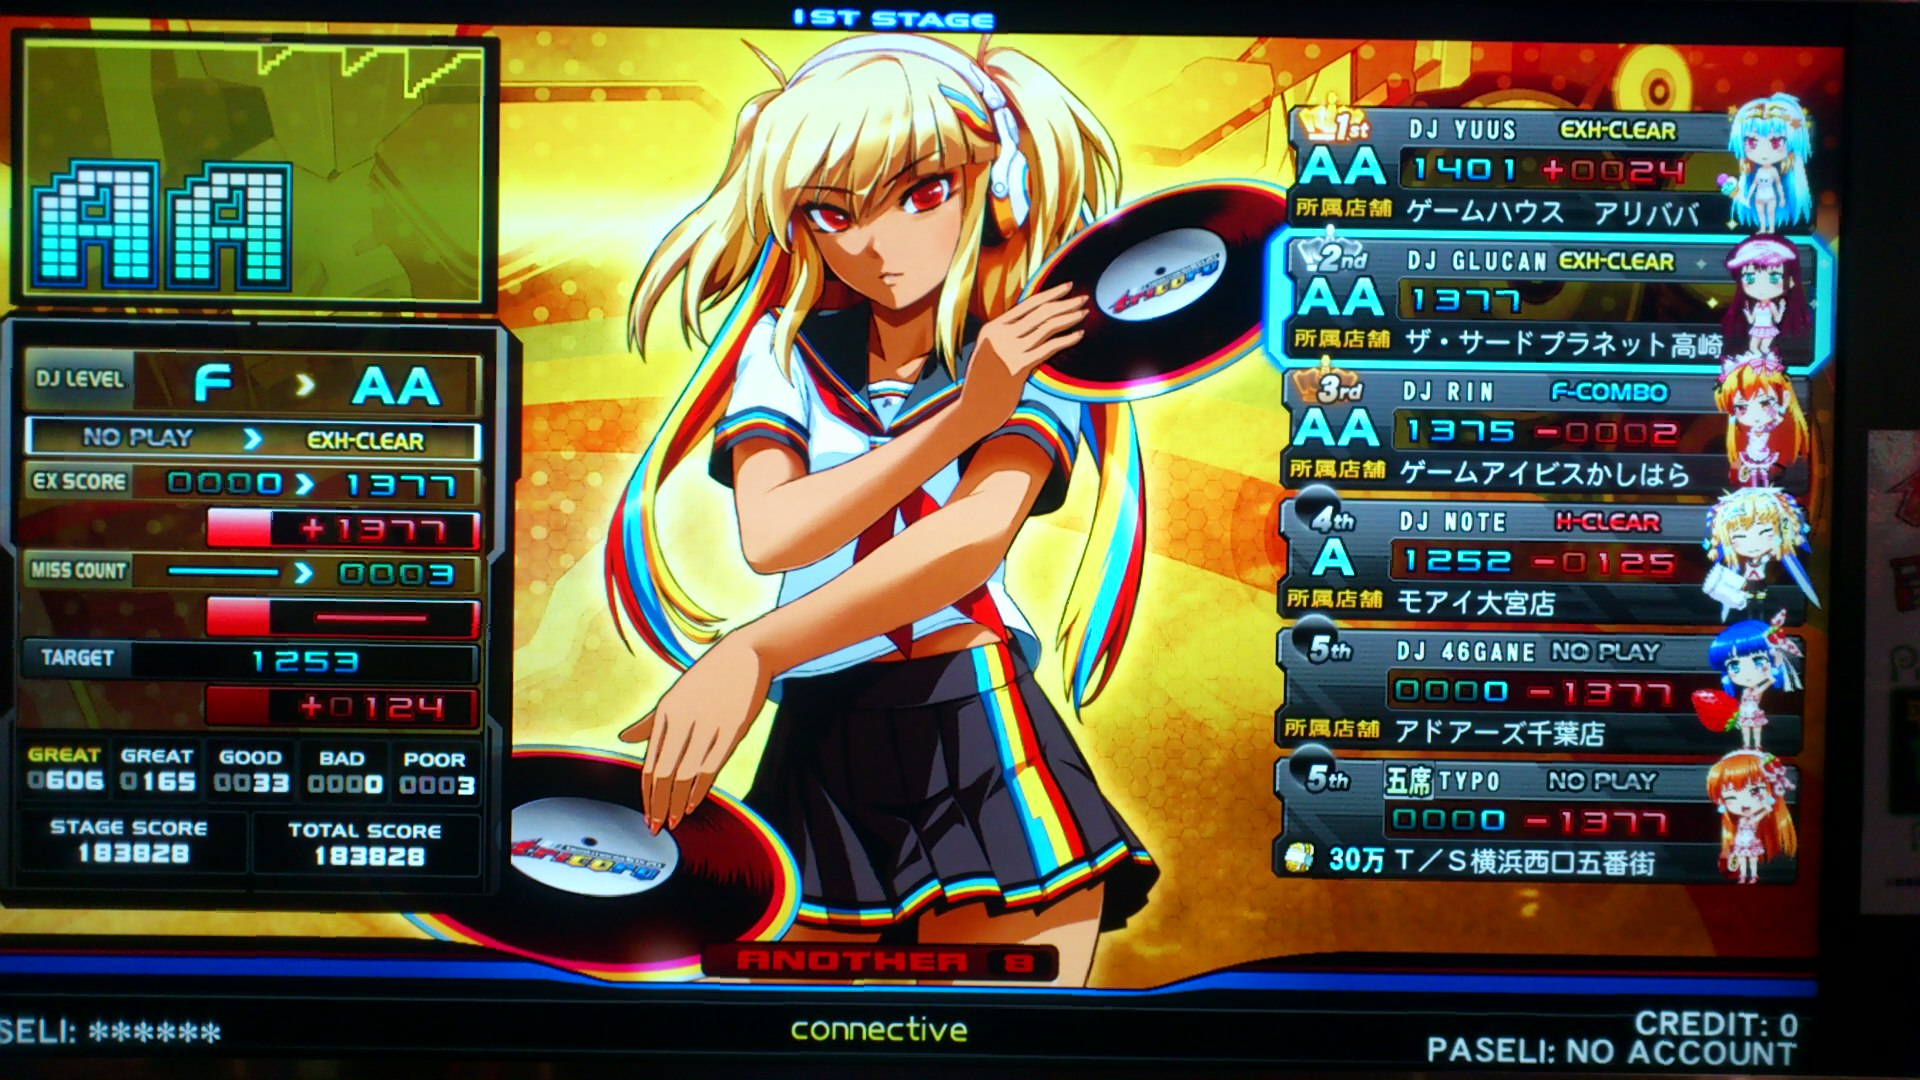 connective AA